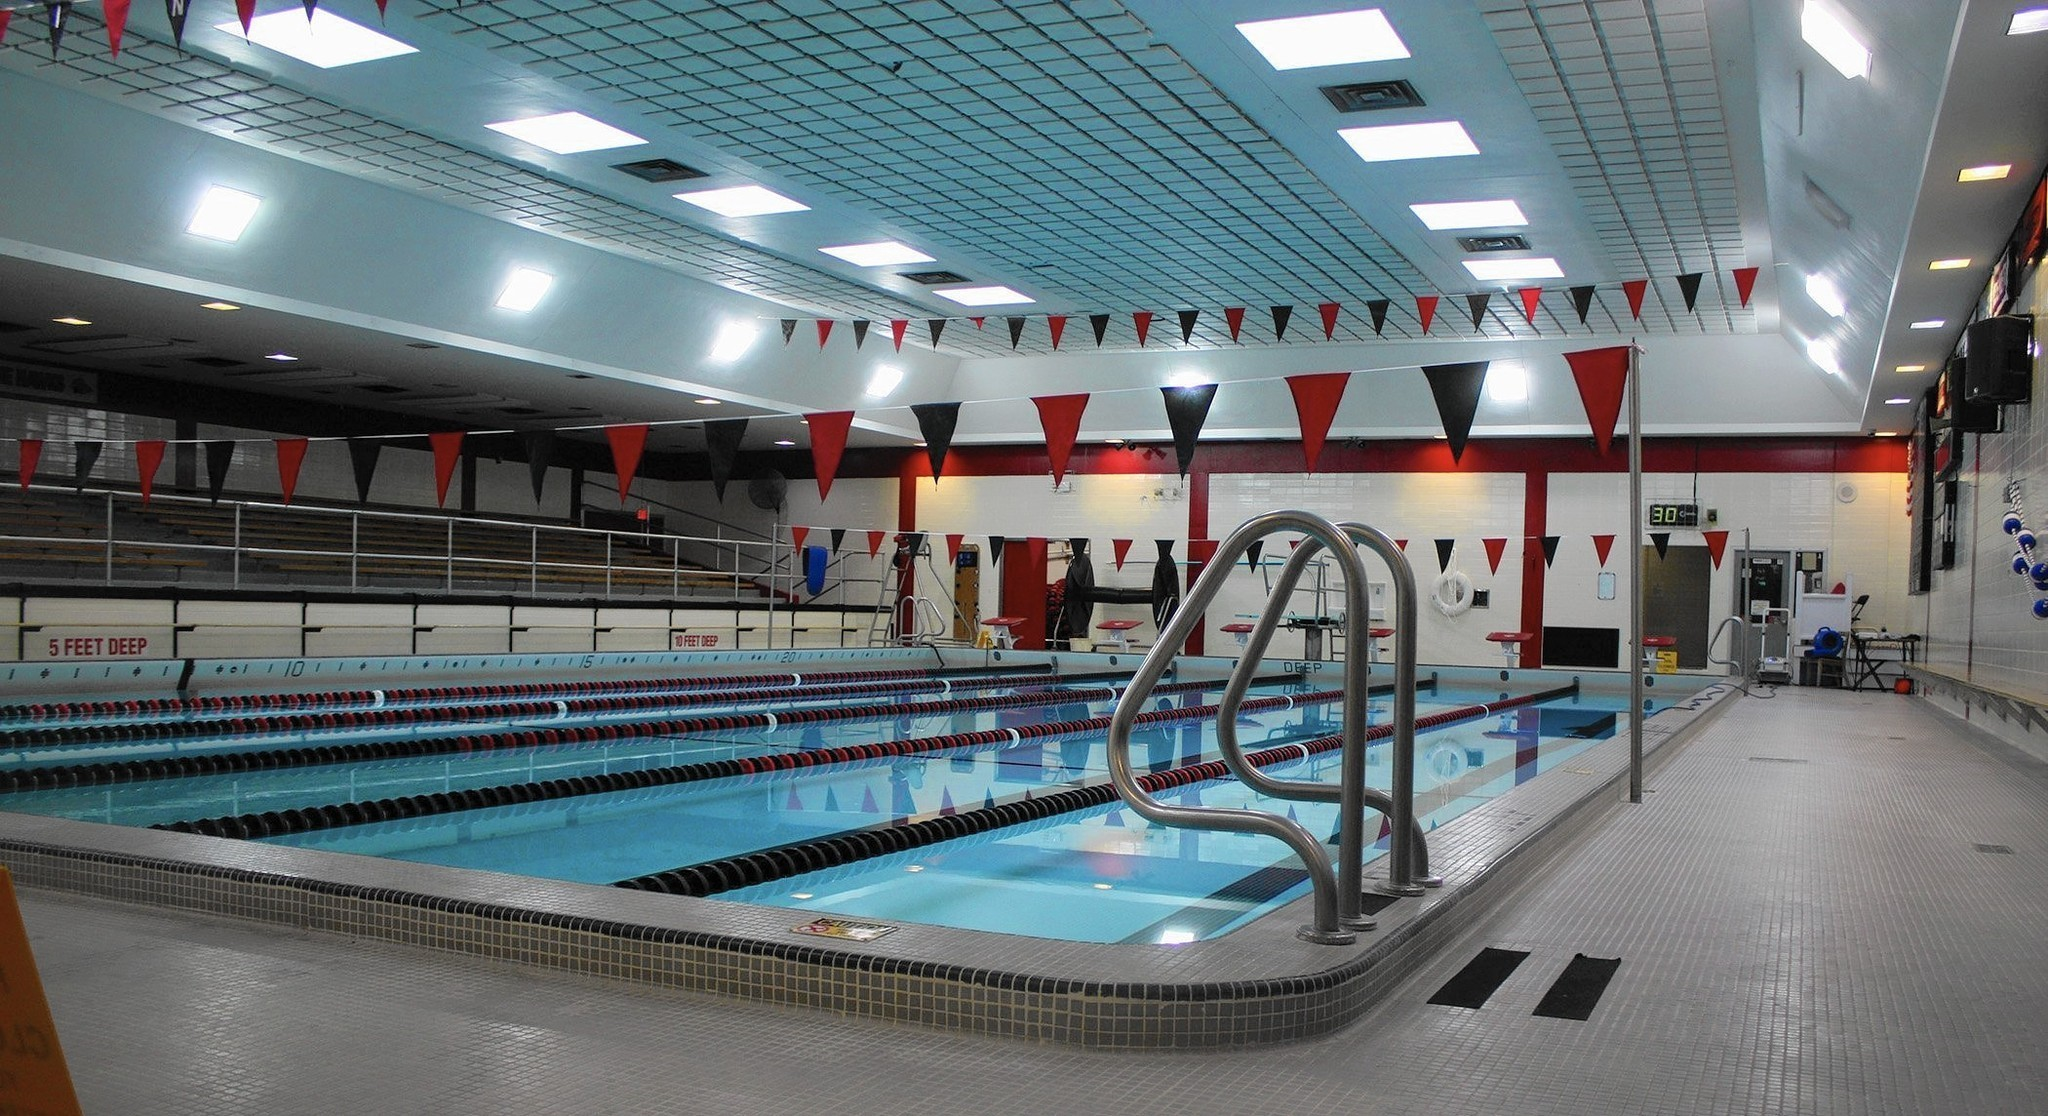 Maine South Boys Swimmers Raise Health Concerns About